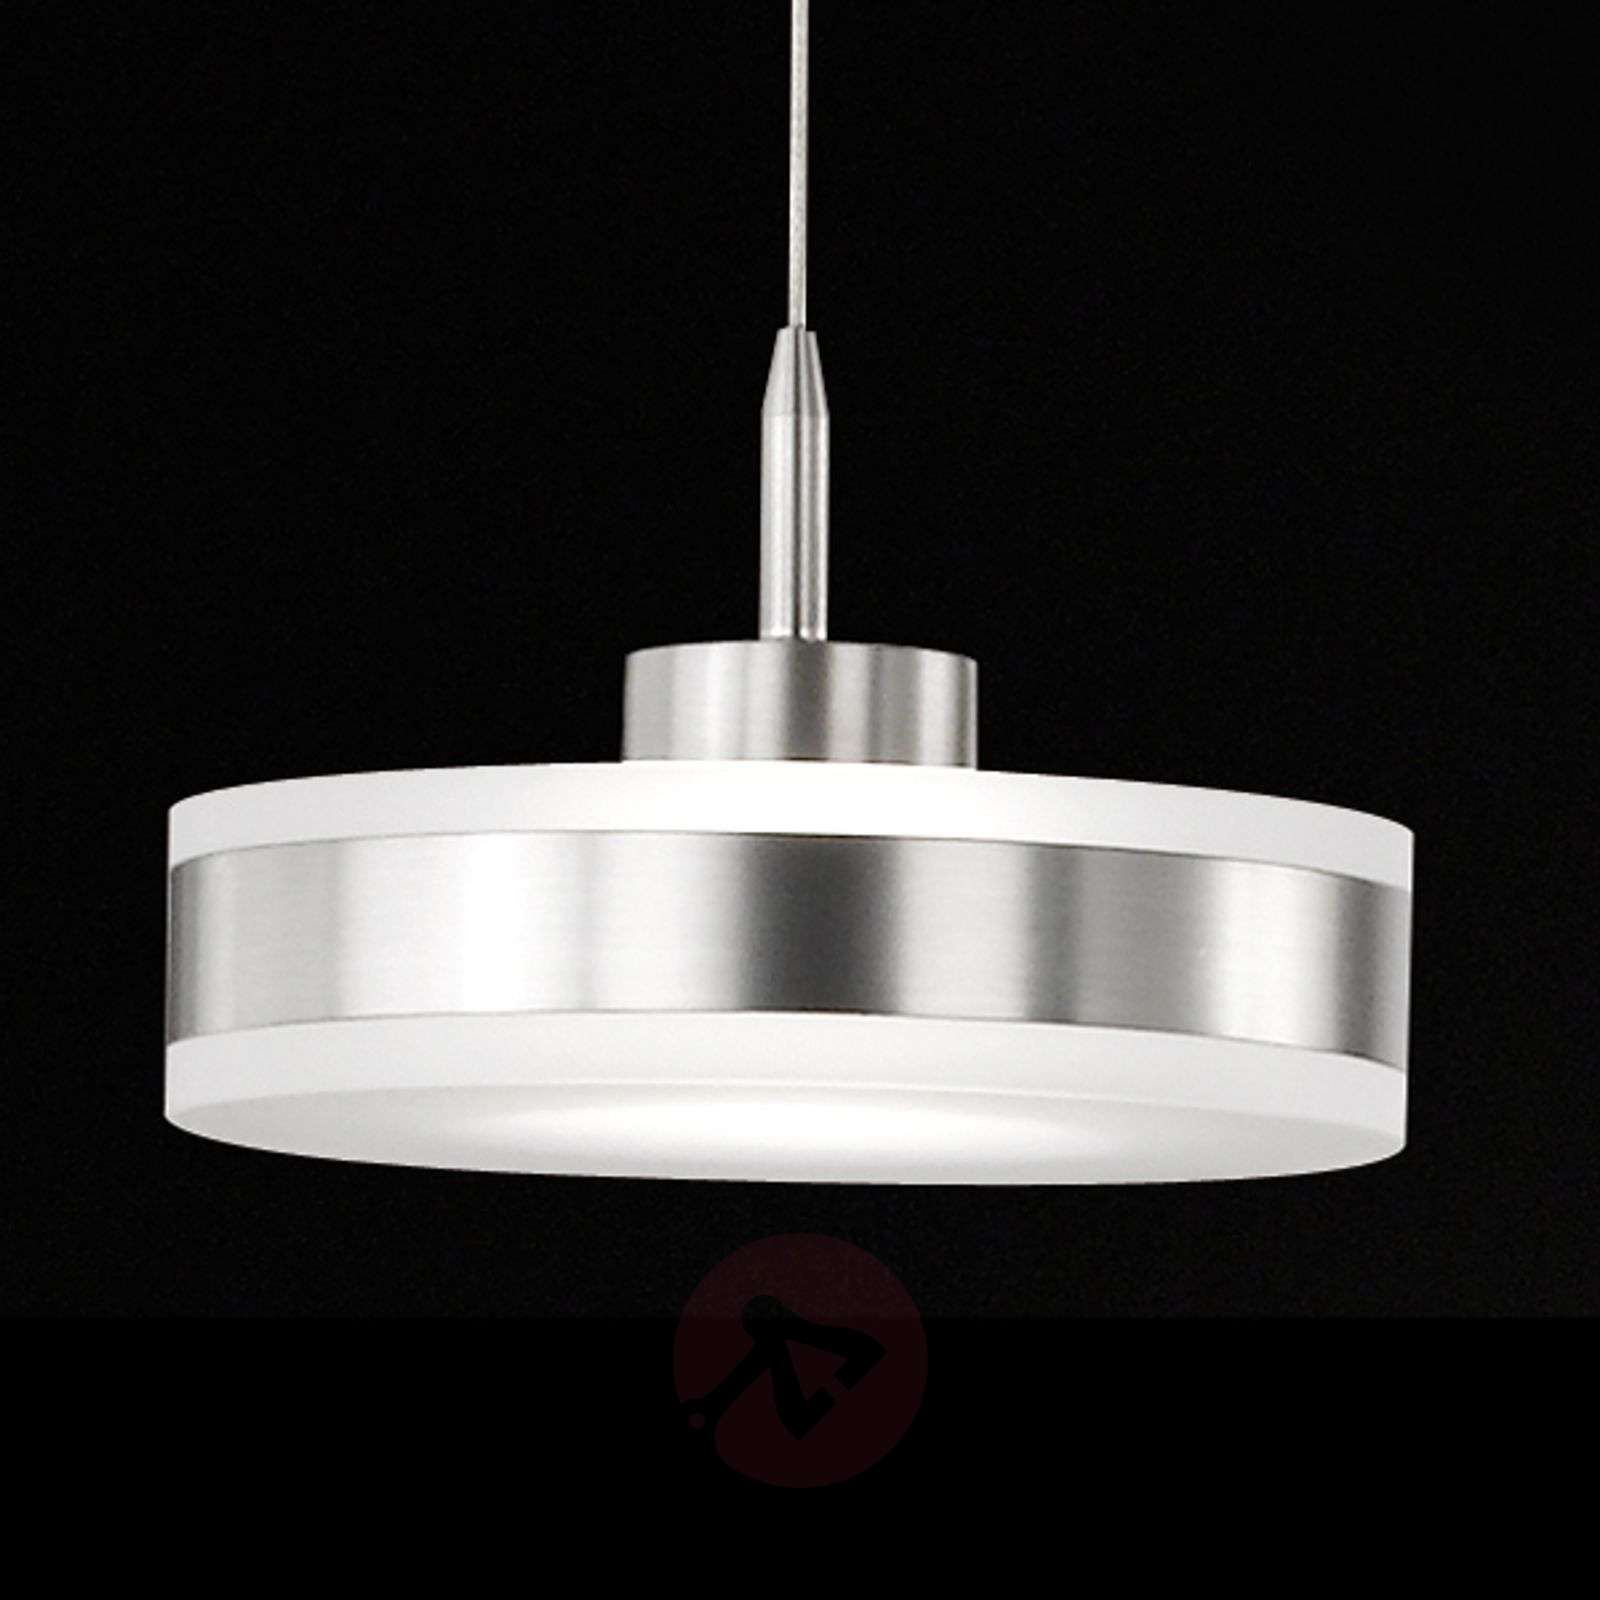 pendant lamp led lighting yongxin en factory products